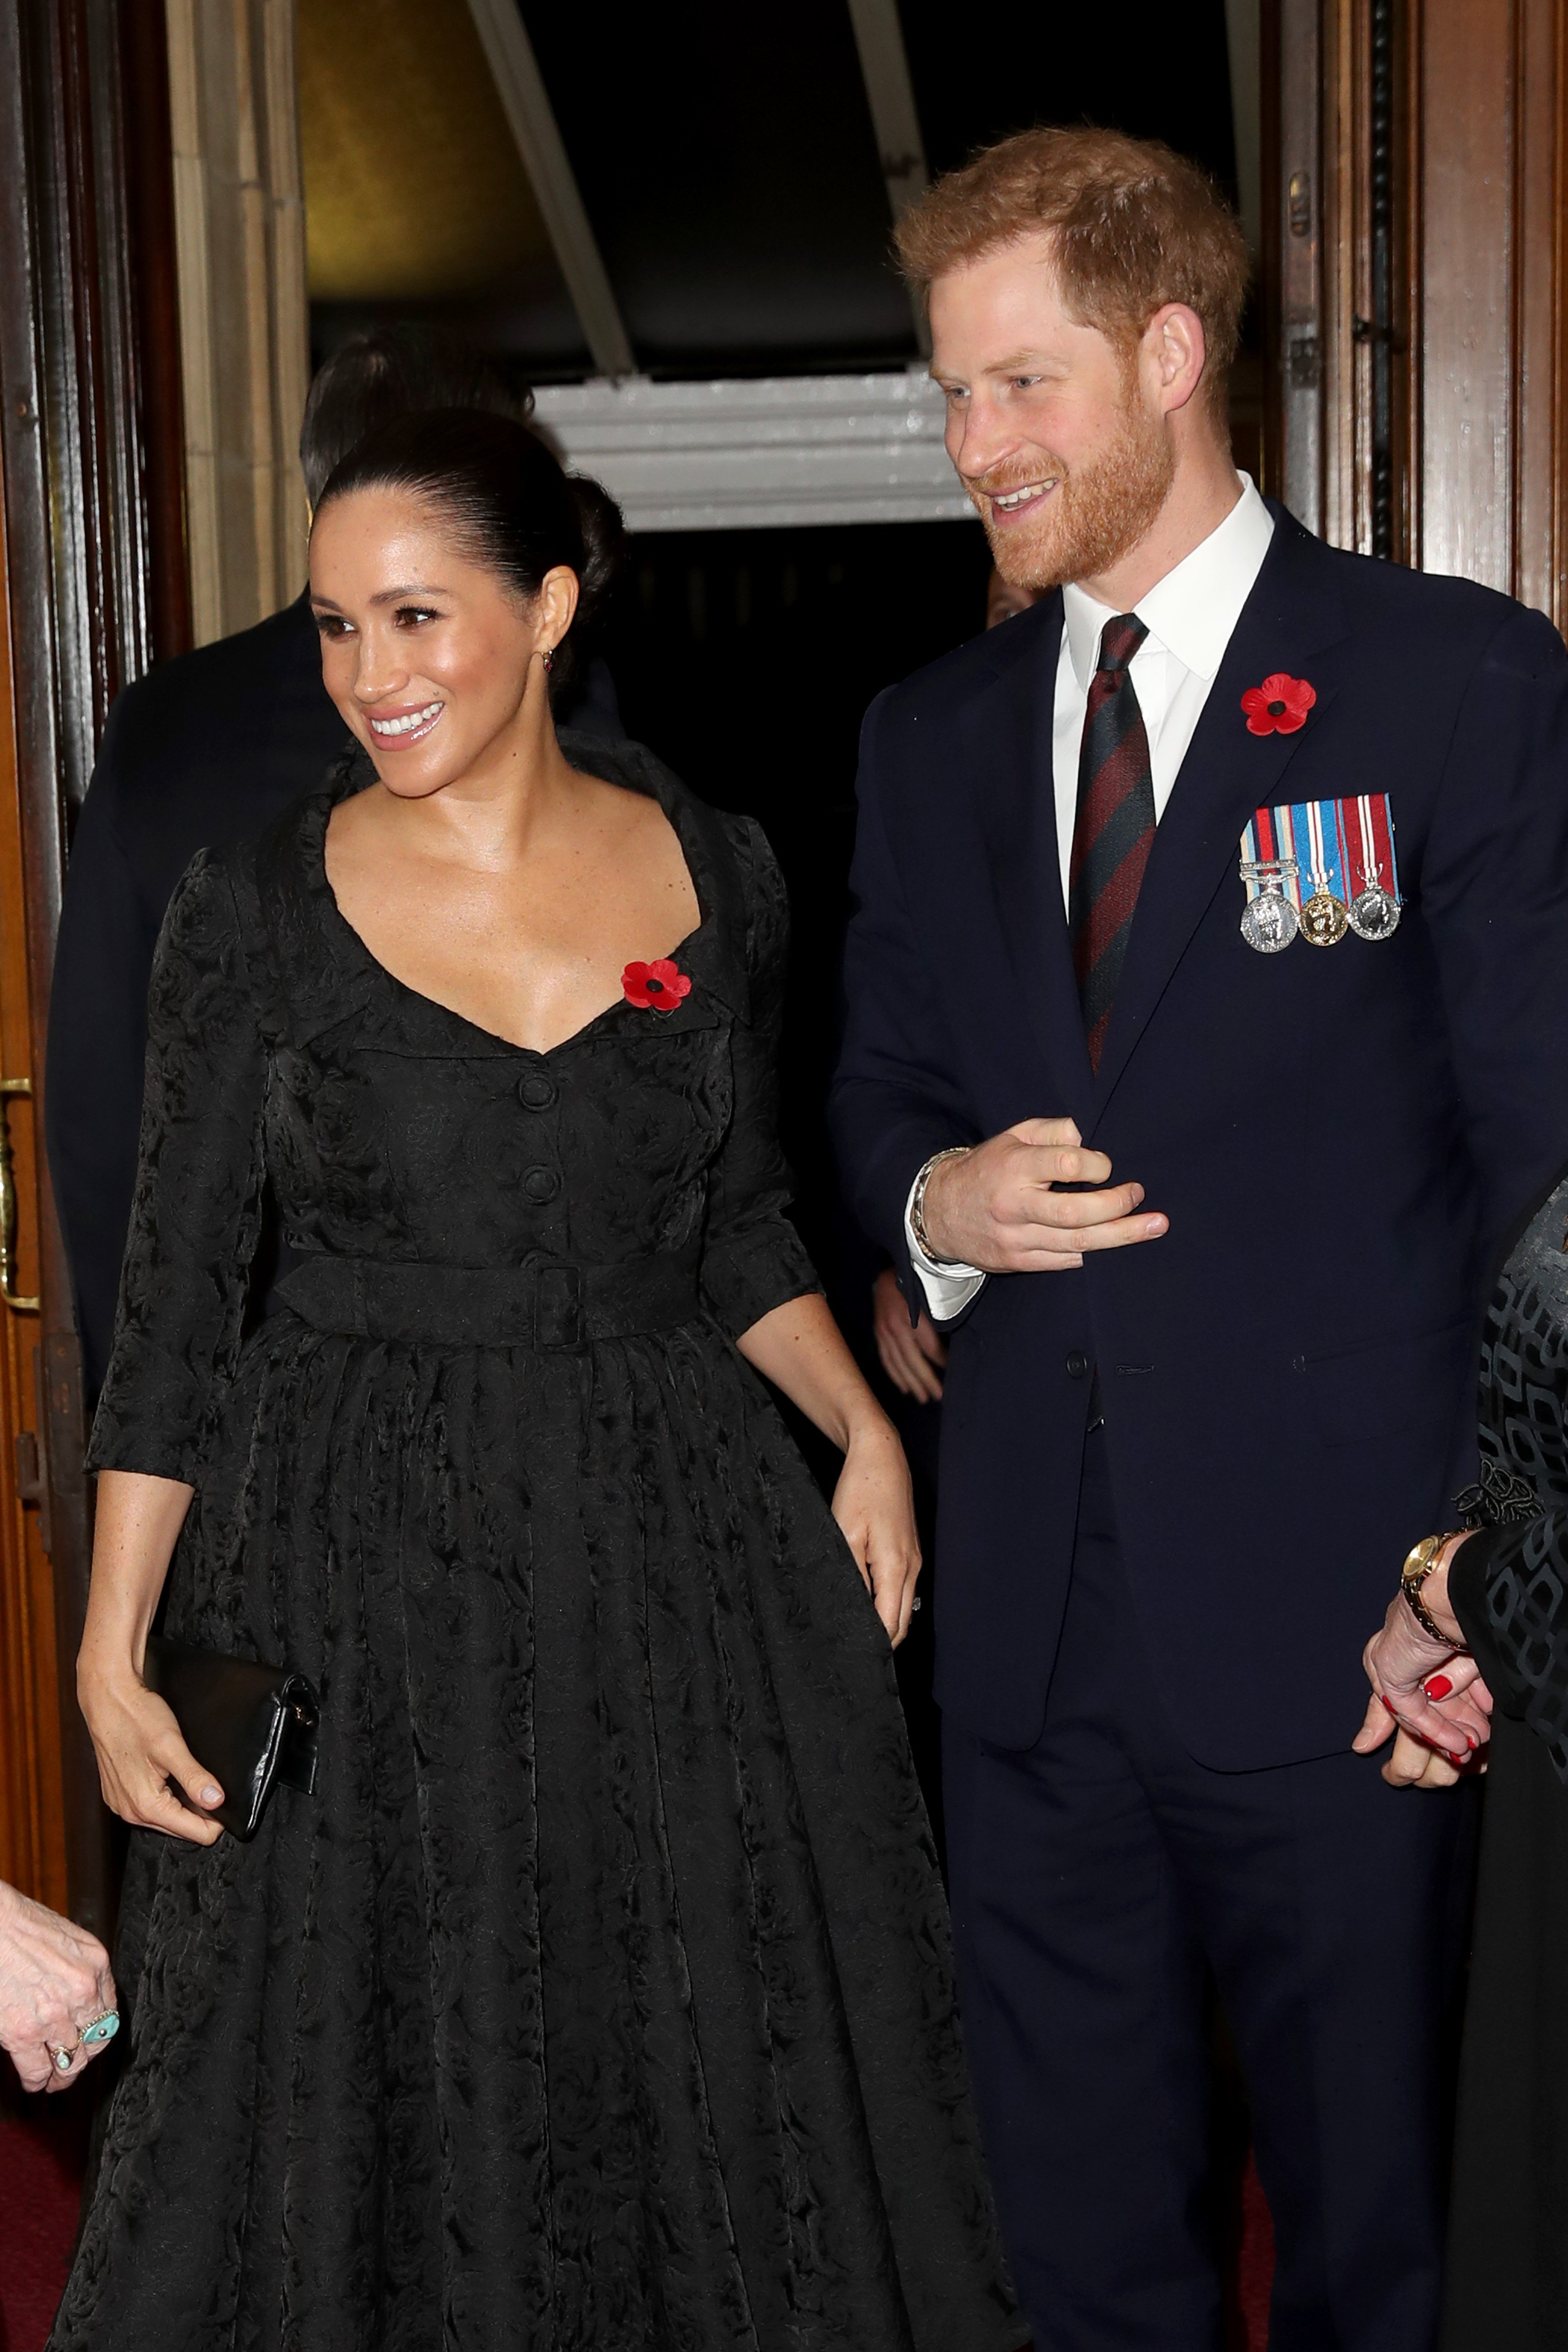 Meghan Markle and Prince Harry attend the Festival of Remembrance in London, England on November 9, 2019 | Photo: Getty Images